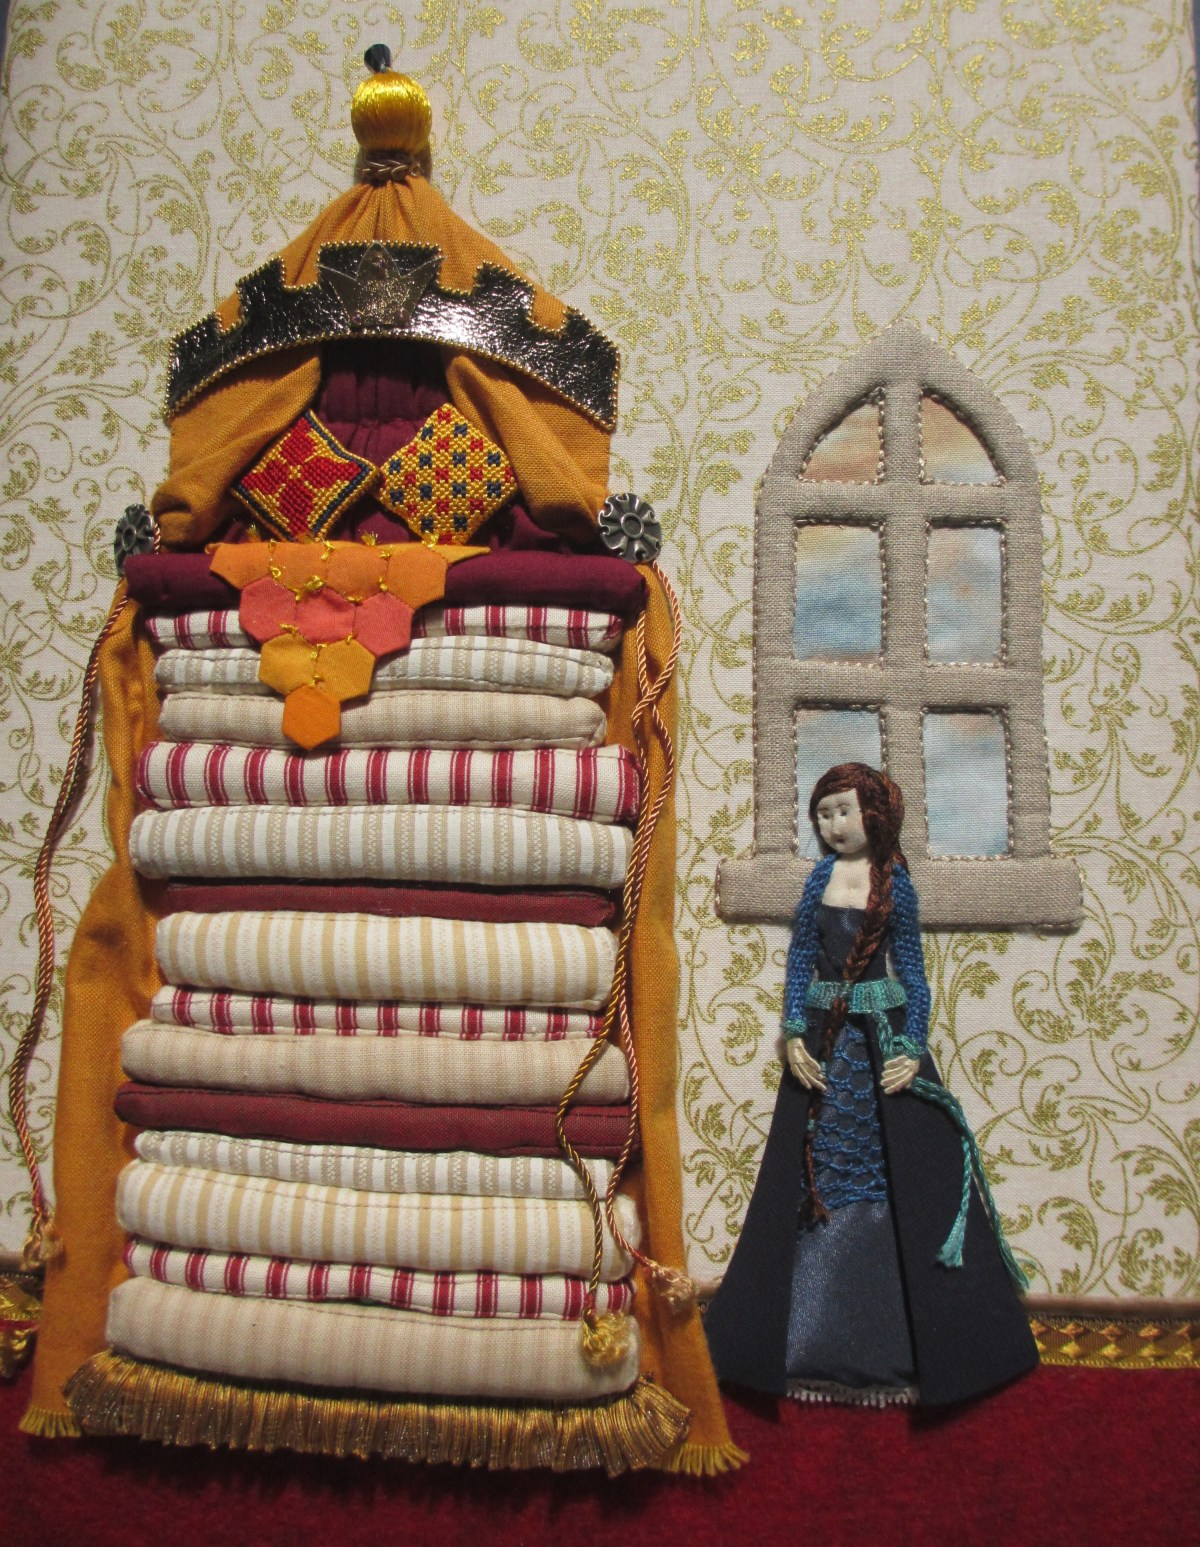 Stories in Stitch Exhibition Coming Soon at the Royal School of Needlework